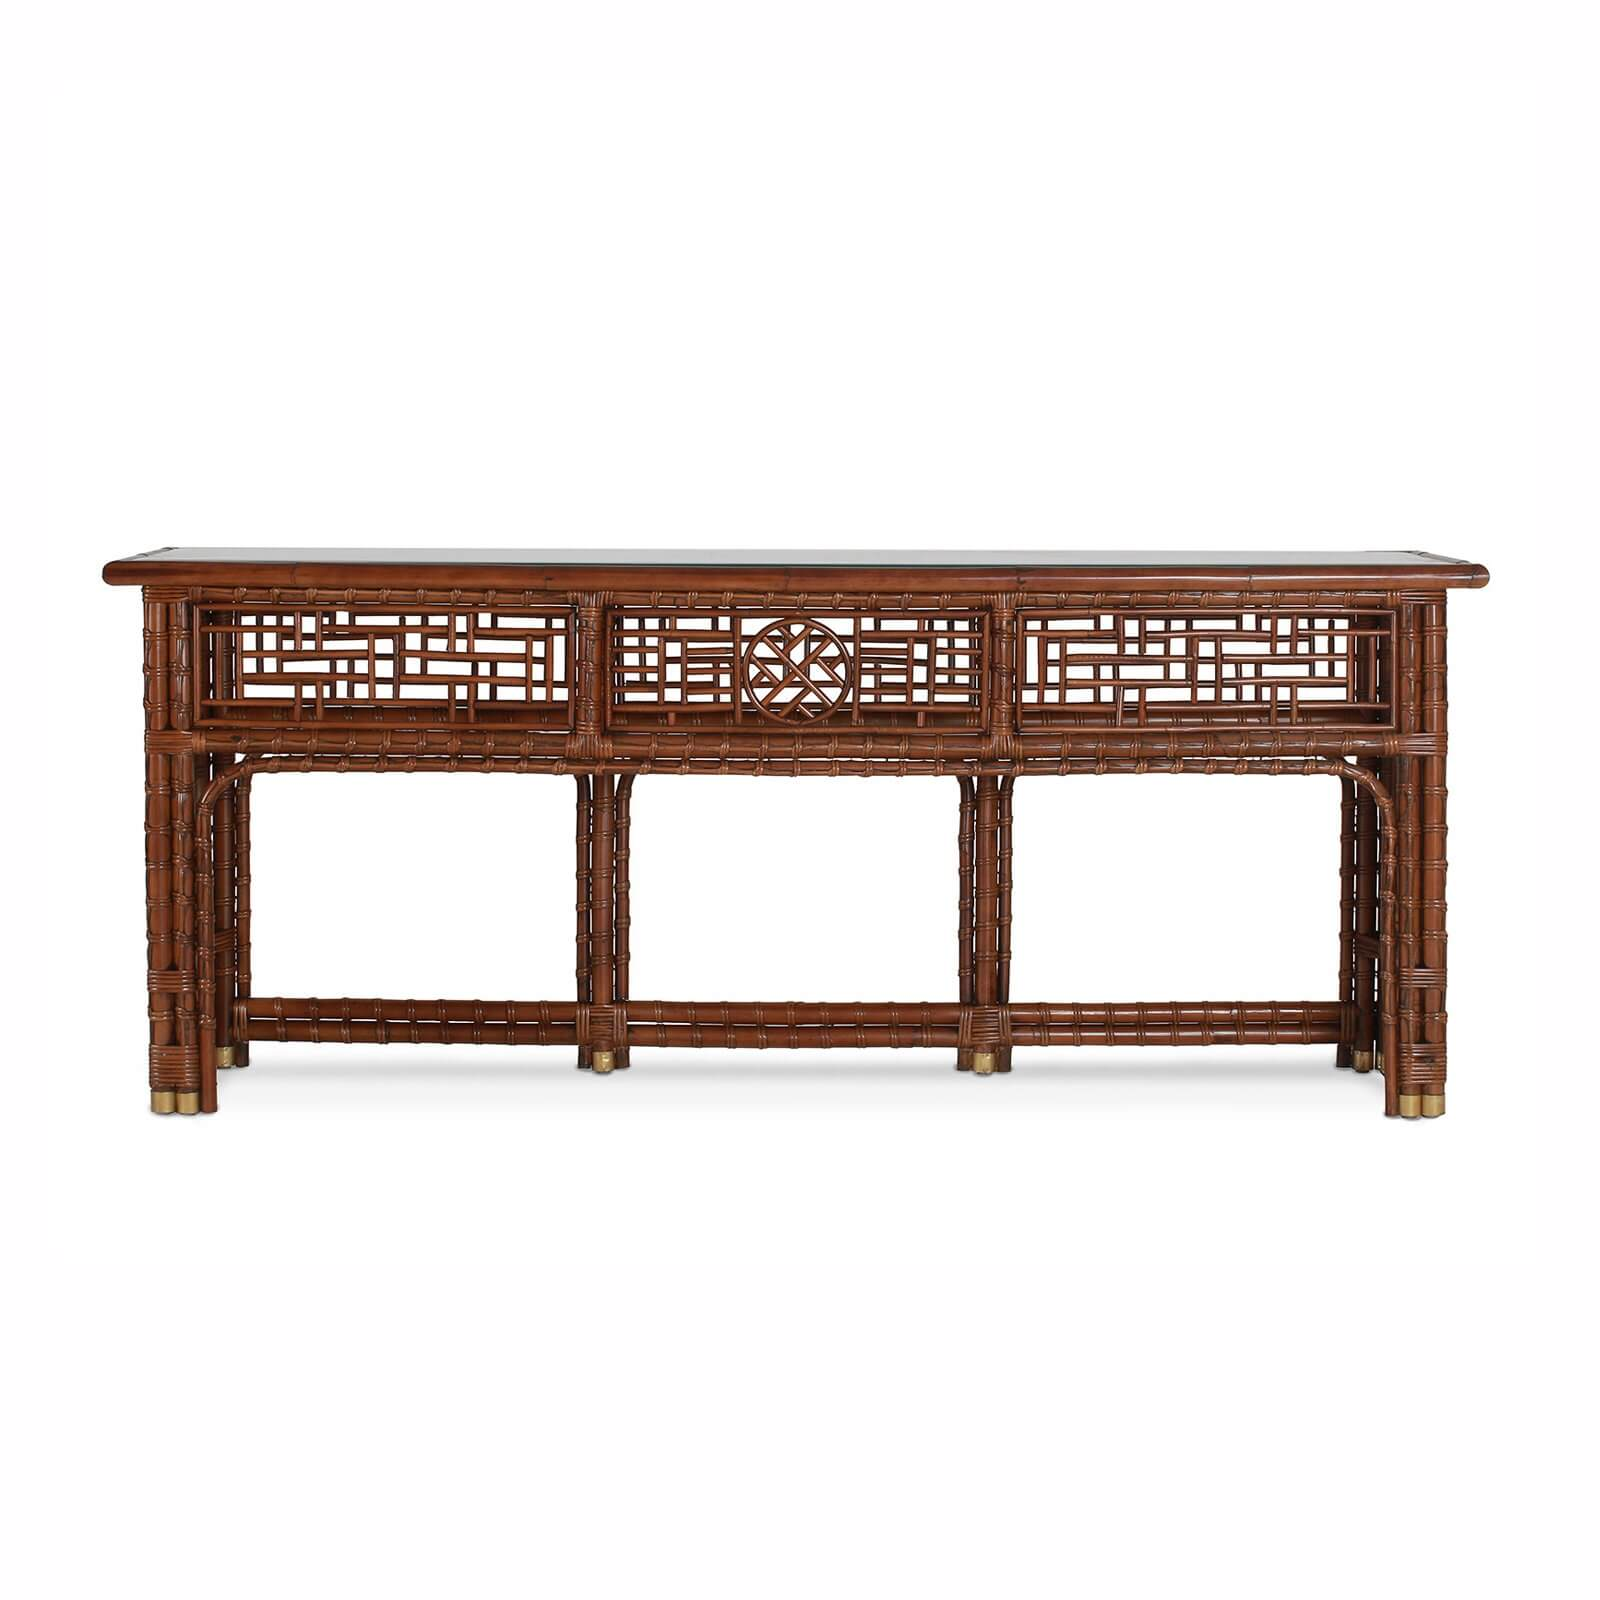 MANDALAY CONSOLE - STUART MEMBERY HOME COLLECTION